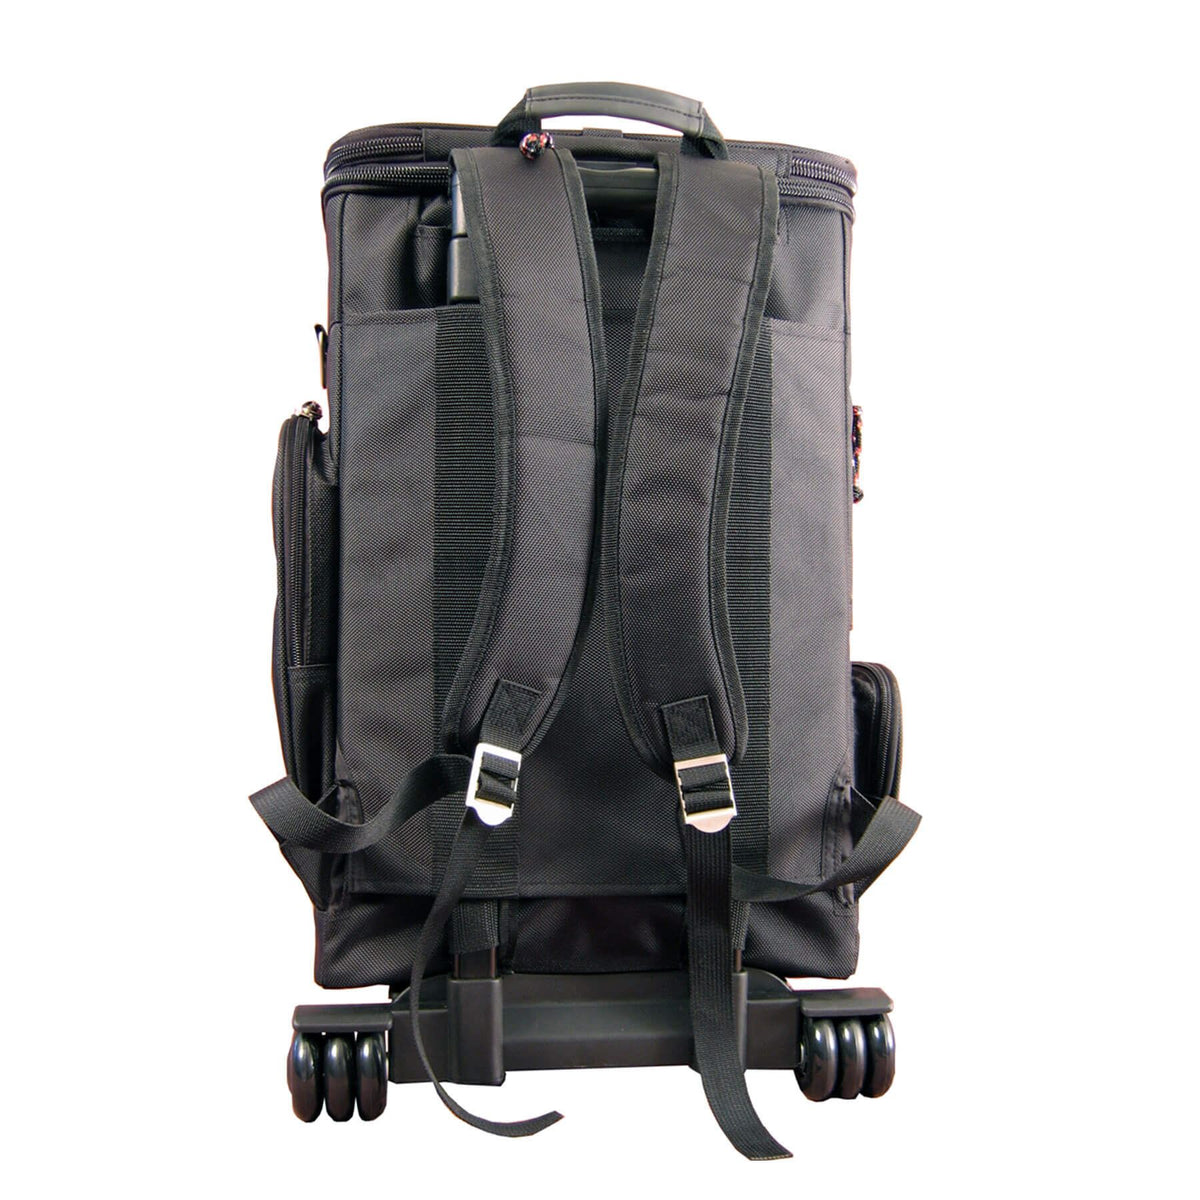 Gator Cases Gear & Laptop Backpack fits Roland FC-300